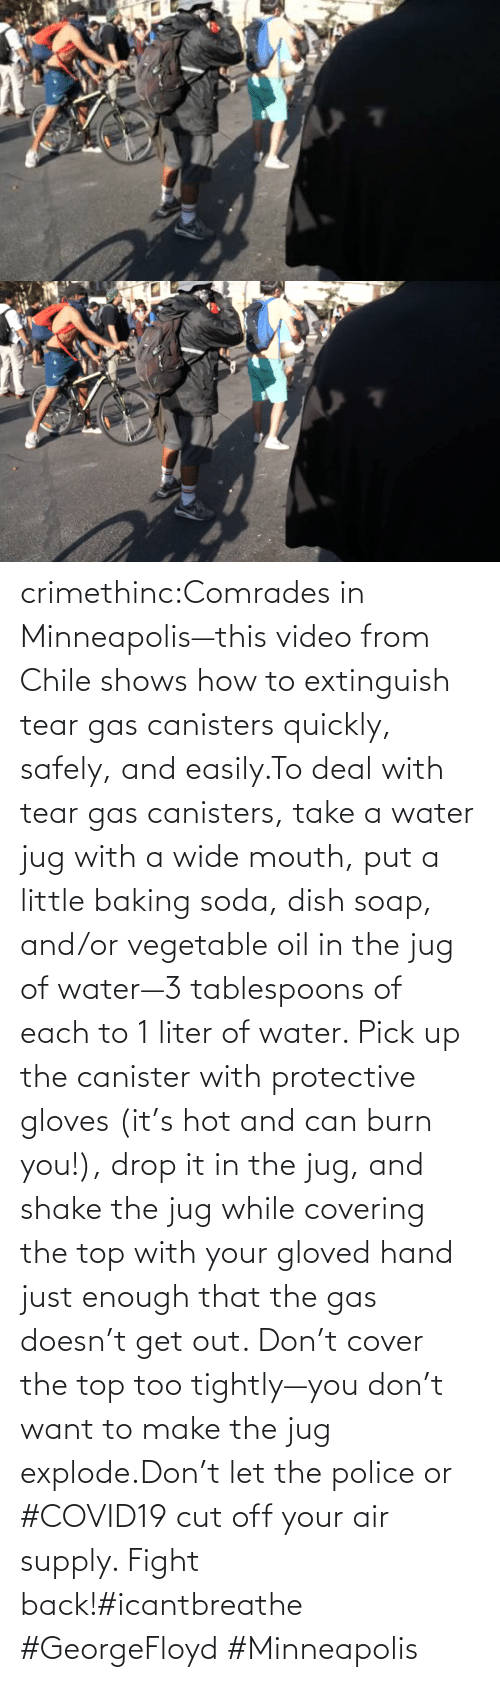 air: crimethinc:Comrades in Minneapolis—this video from Chile shows how to extinguish tear gas canisters quickly, safely, and easily.To deal with tear gas canisters, take a water jug with a wide mouth, put a little baking soda, dish soap, and/or vegetable oil in the jug of water—3 tablespoons of each to 1 liter of water. Pick up the canister with protective gloves (it's hot and can burn you!), drop it in the jug, and shake the jug while covering the top with your gloved hand just enough that the gas doesn't get out. Don't cover the top too tightly—you don't want to make the jug explode.Don't let the police or #COVID19 cut off your air supply. Fight back!#icantbreathe #GeorgeFloyd #Minneapolis